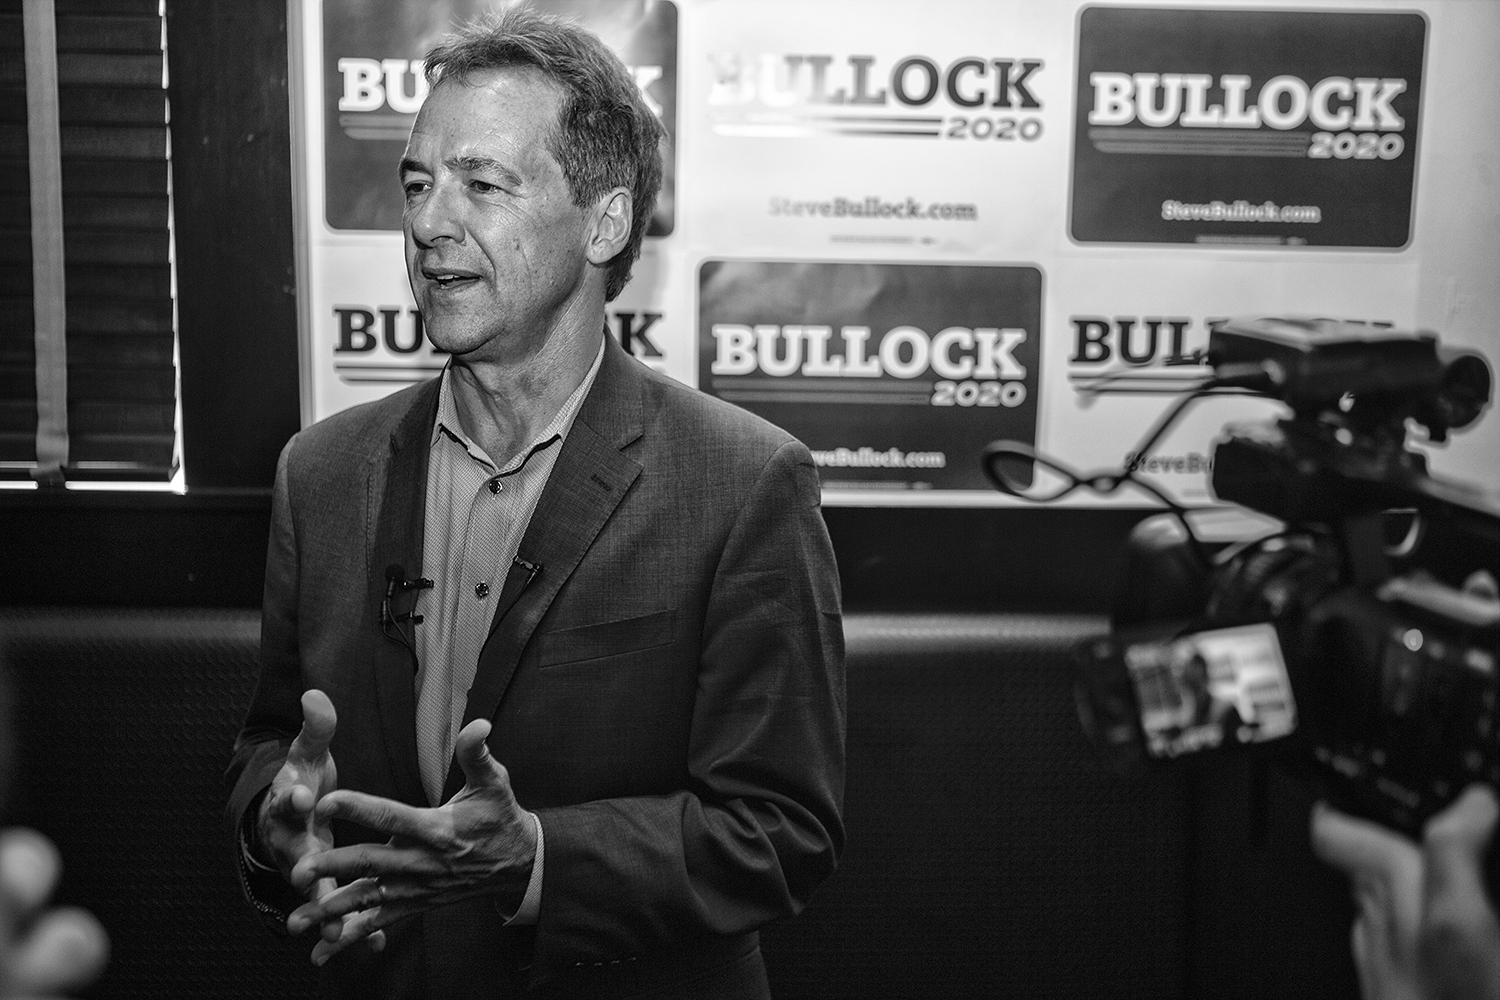 Governor+of+Montana+Steve+Bullock+addresses+members+of+the+press+during+his+meet+and+greet+in+Blackstone+on+July+10%2C+2019.+